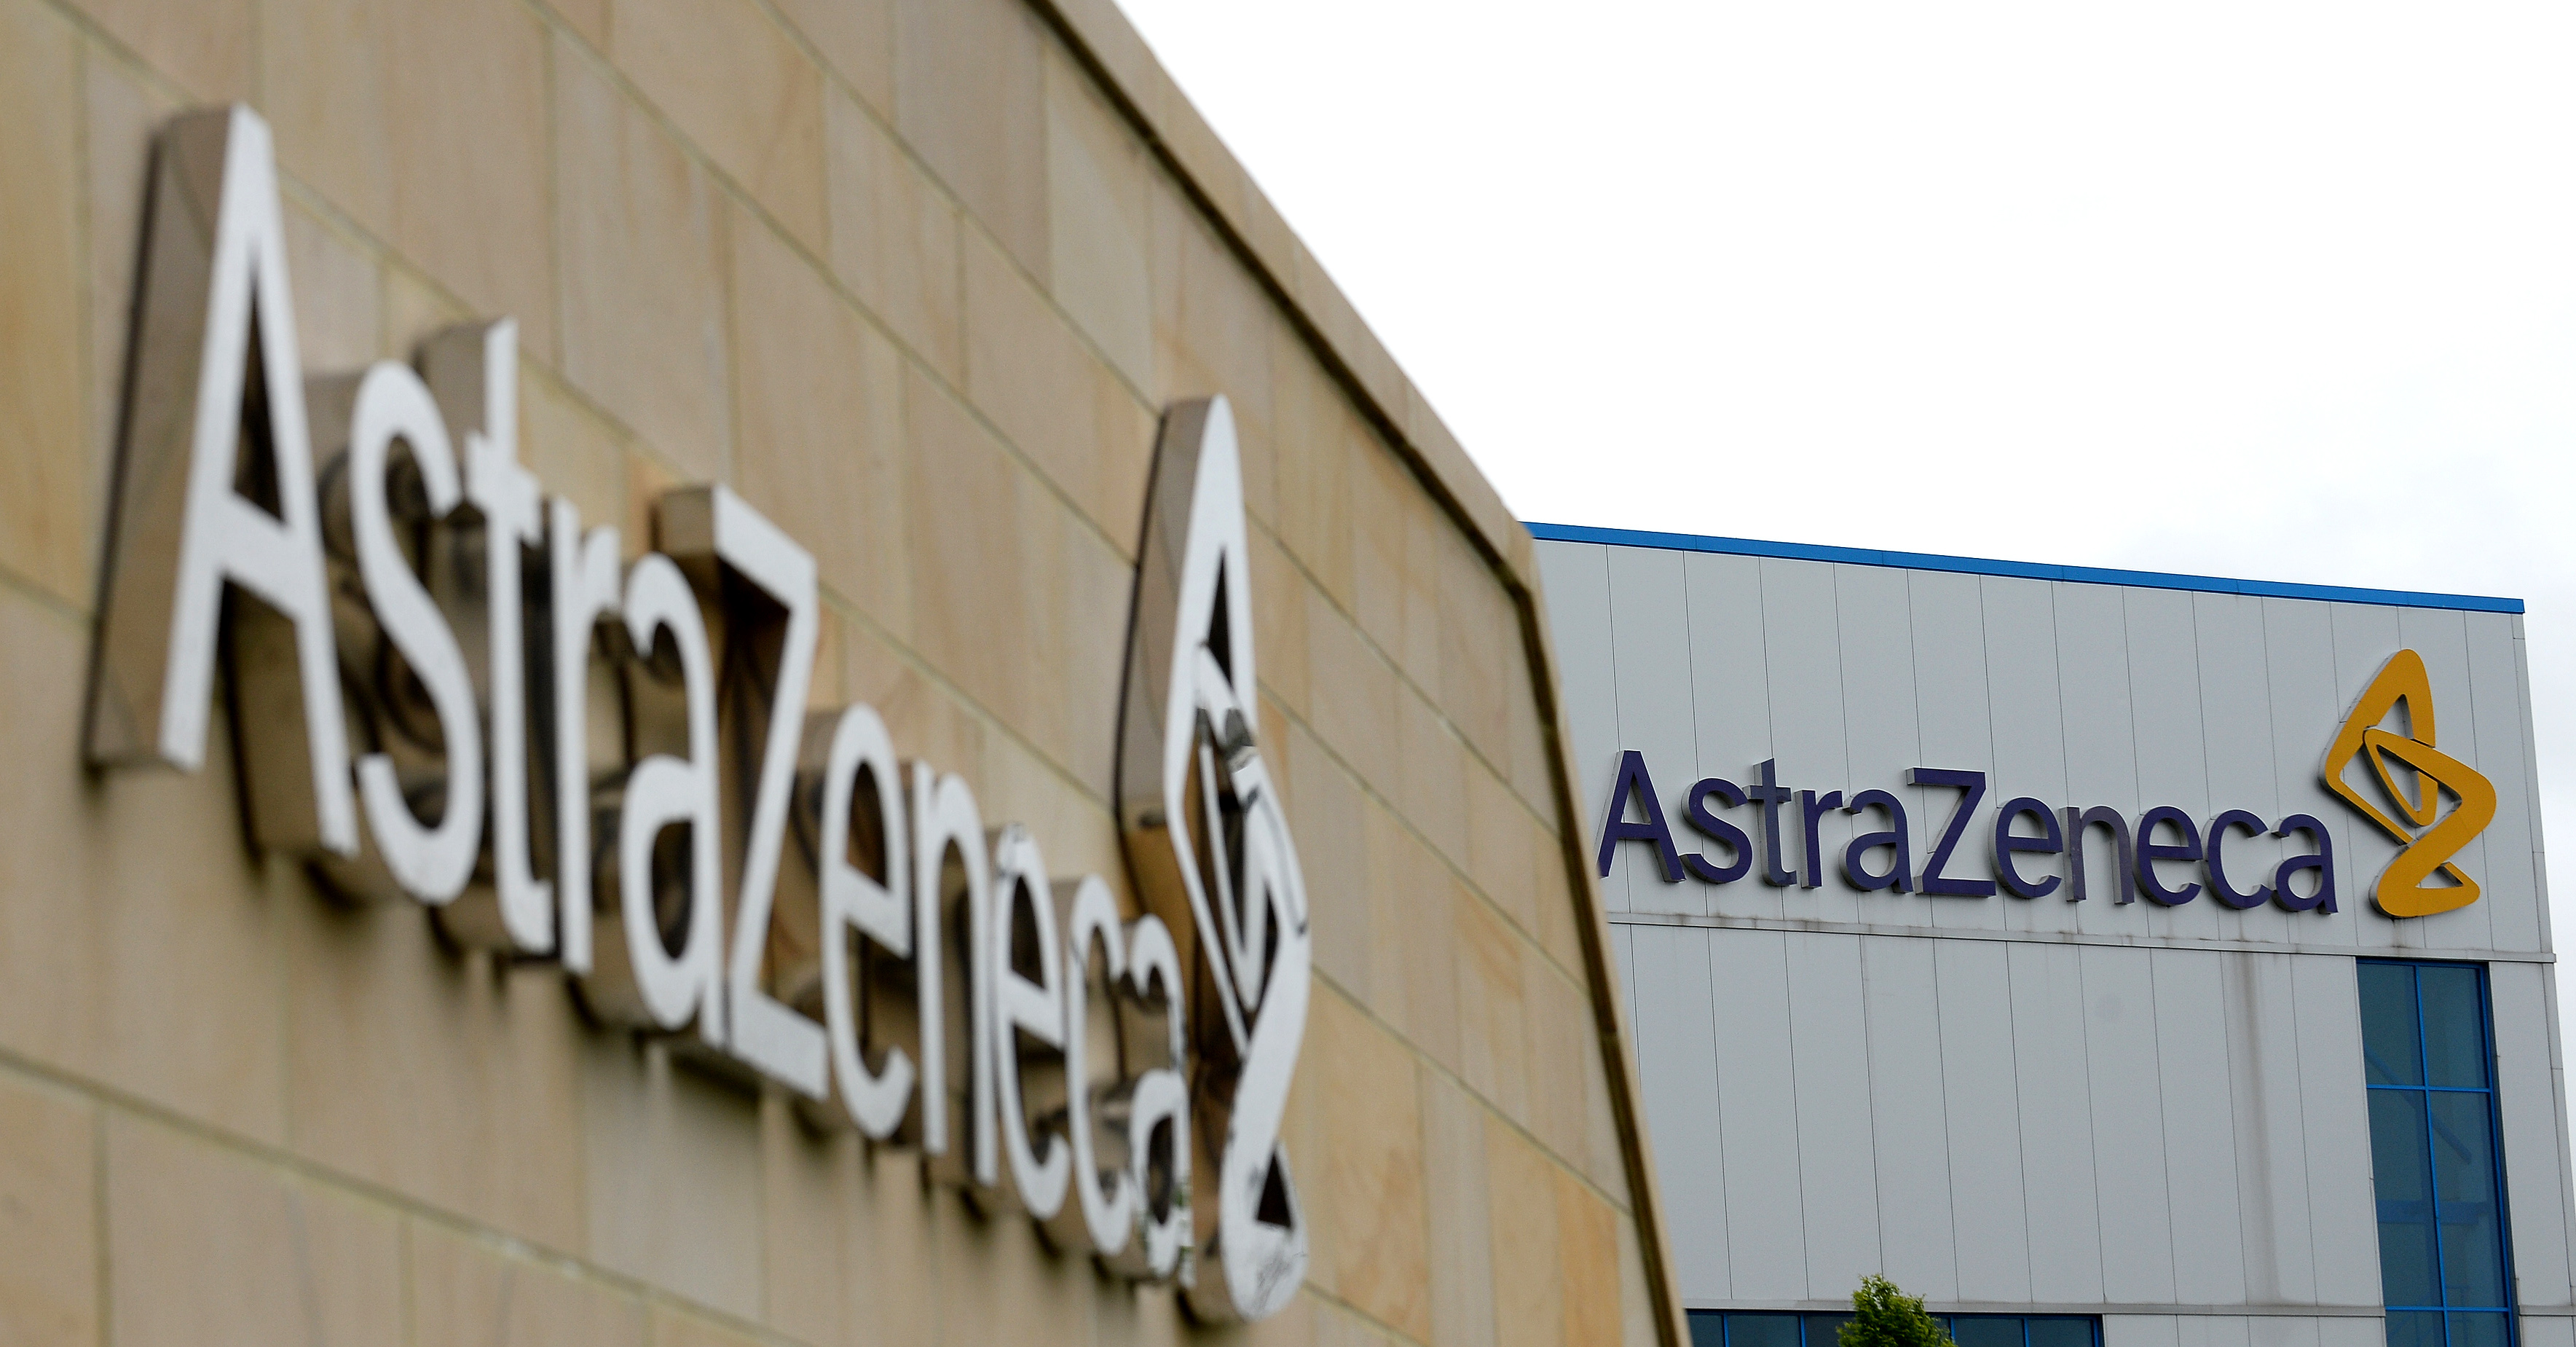 A picture shows British pharmaceutical company AstraZeneca's manufacturing site in Macclesfield, northwest England, on May 8, 2014. British drugmaker AstraZeneca said it was targeting annual revenues of more than $45 billion (32 billion euros) by 2023, upping its defence against a takeover bid from US rival Pfizer. (Photo by Andrew YATES / AFP via Getty Images)